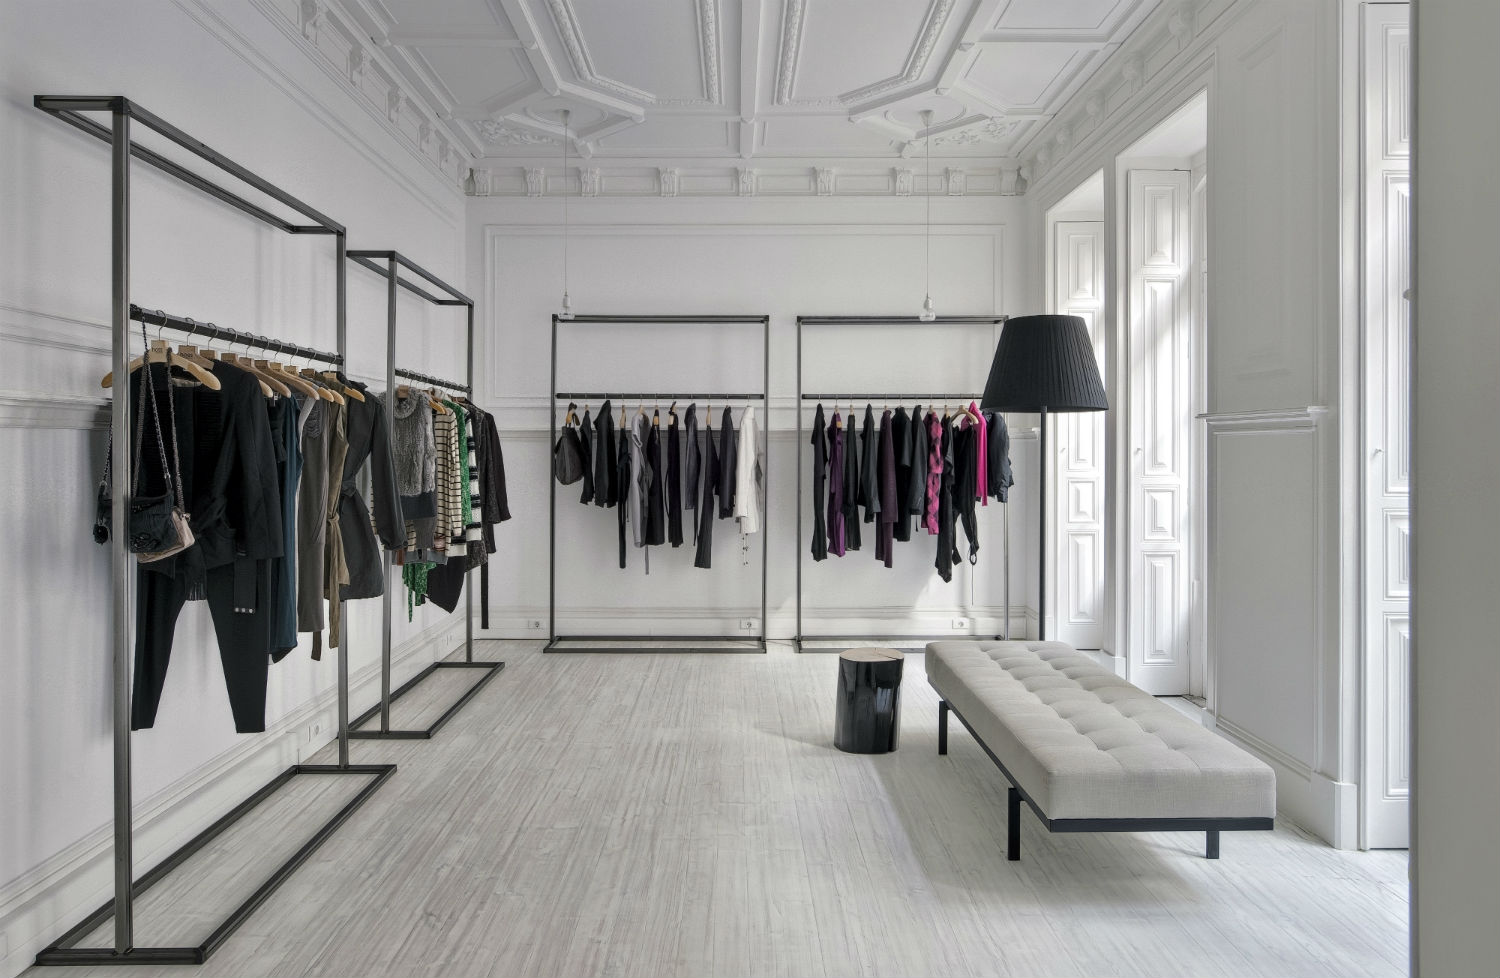 Interior Architecture and Decoration for Fashion Showroom by Cristina Jorge de Carvalho